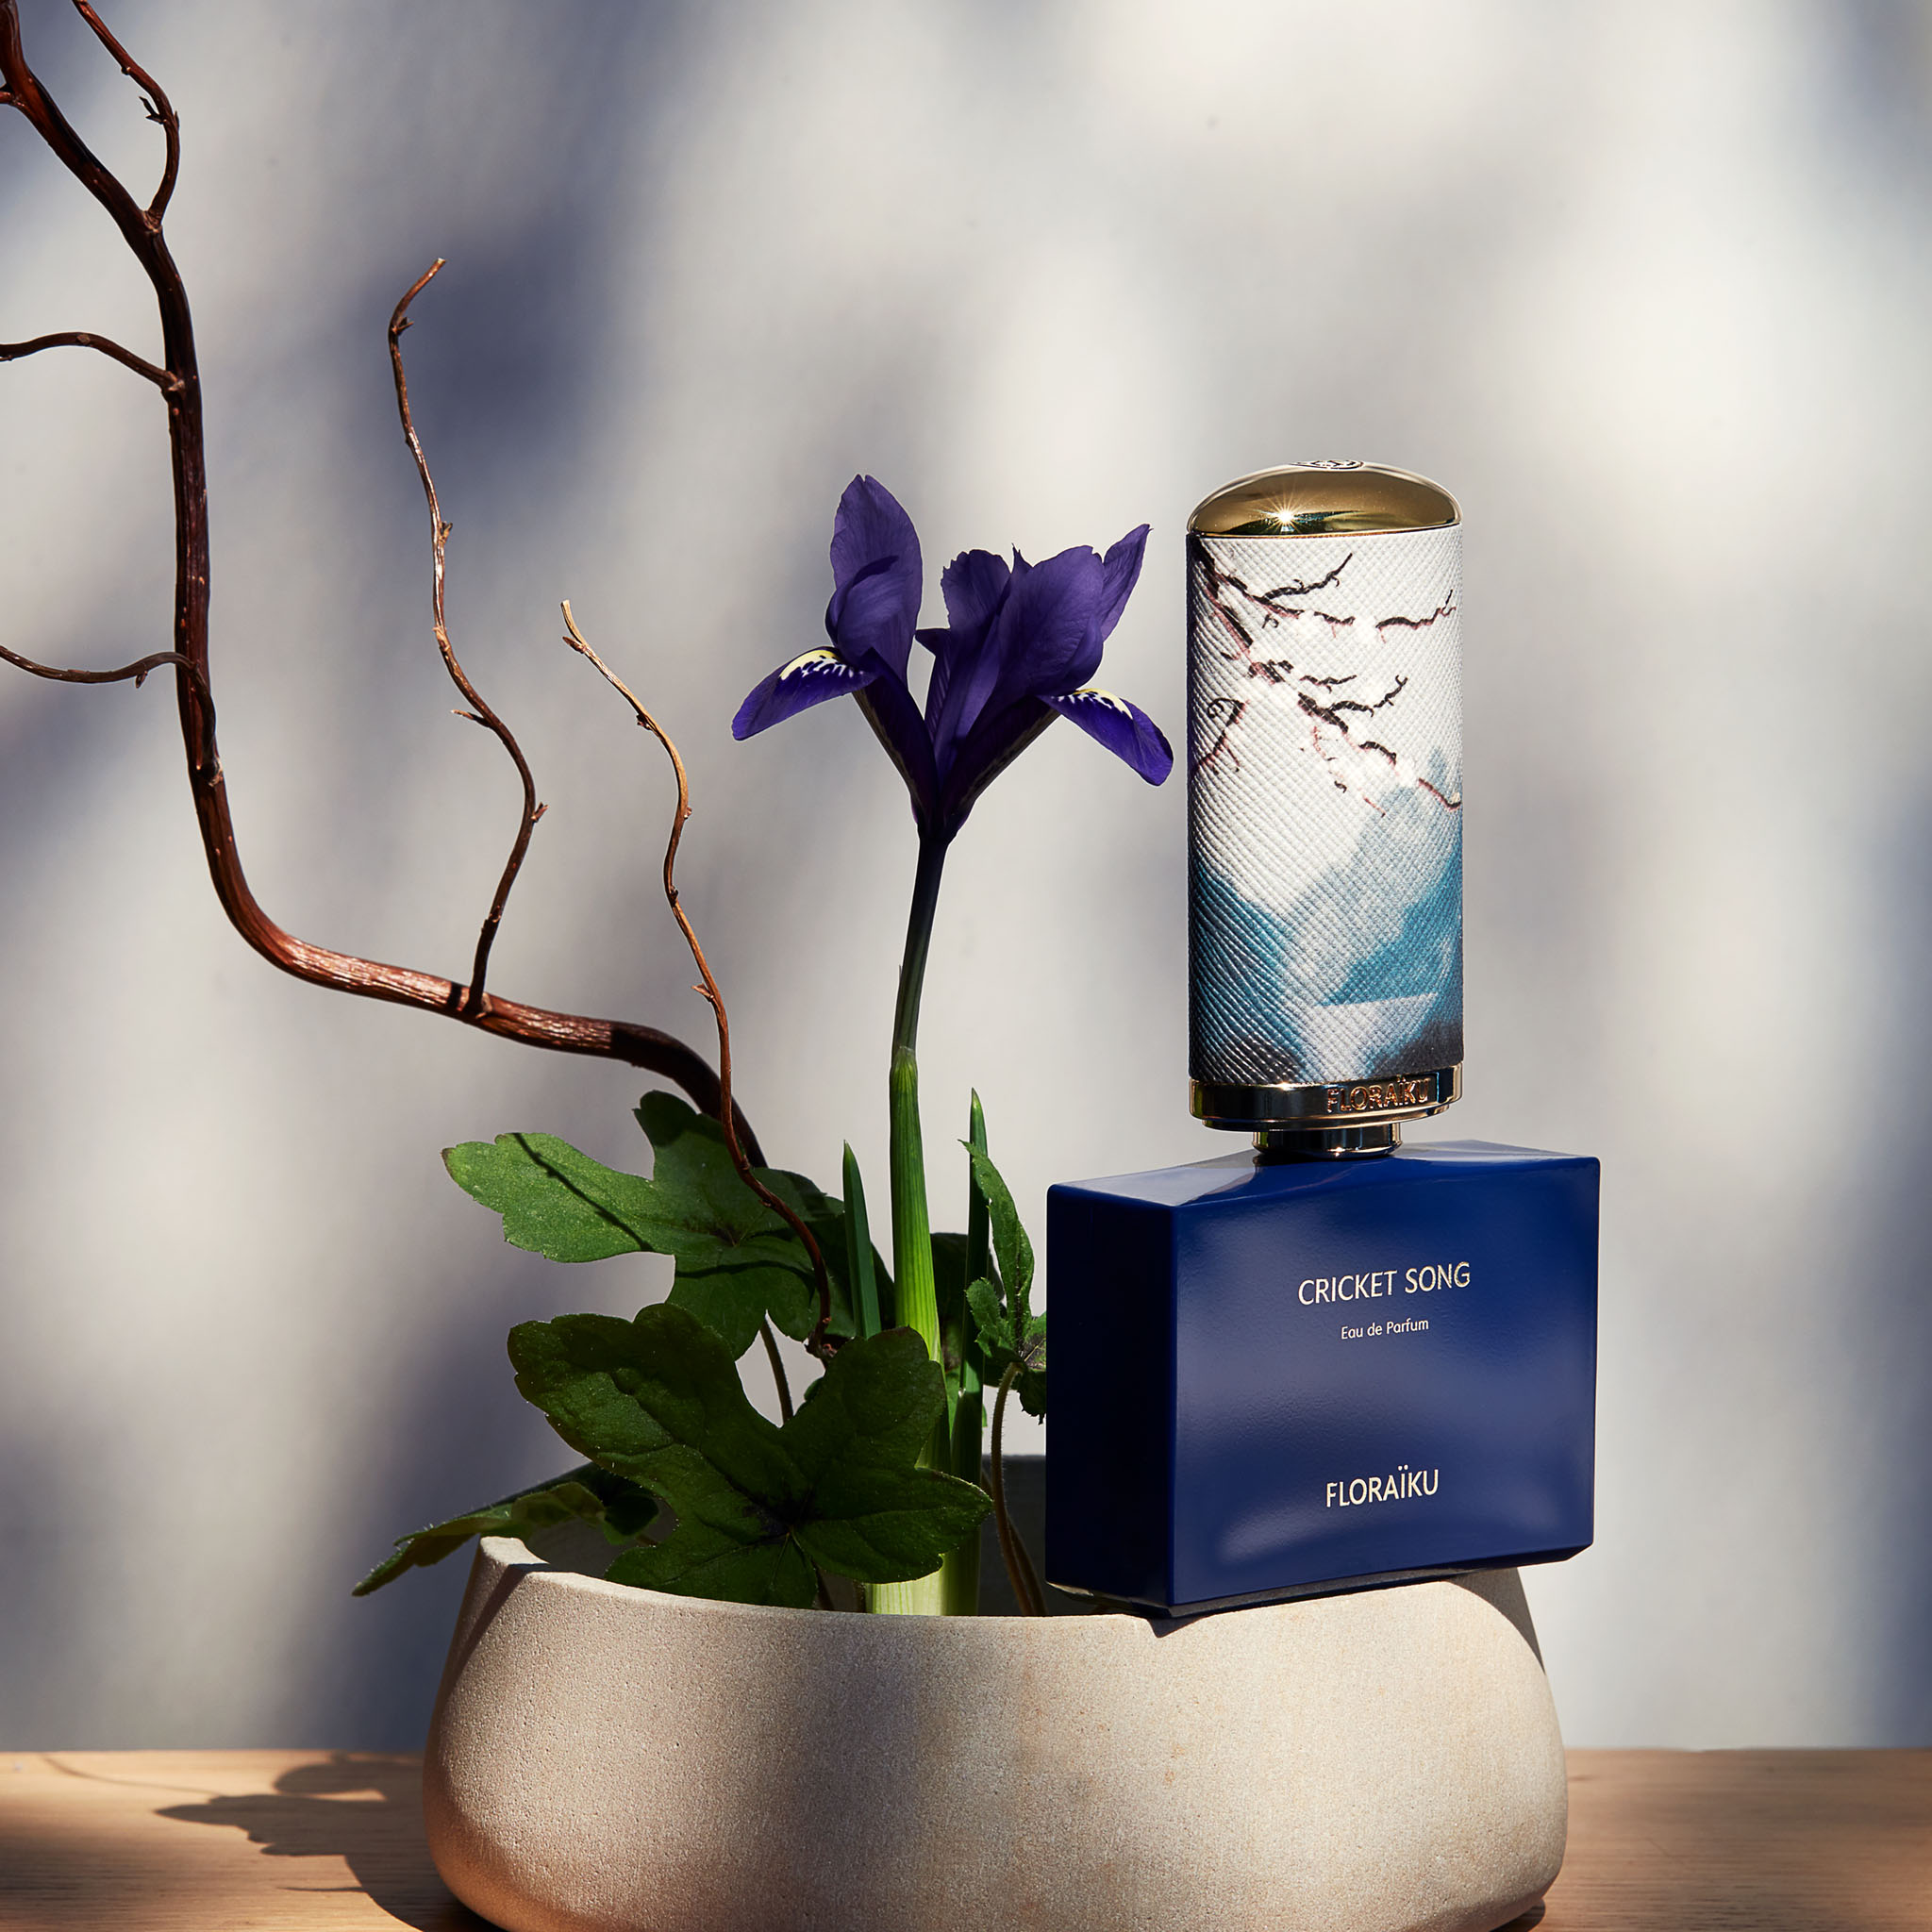 FLORAÏKU Brand Content. Parfum Japon Instagram Photos Cricket Song ikebana